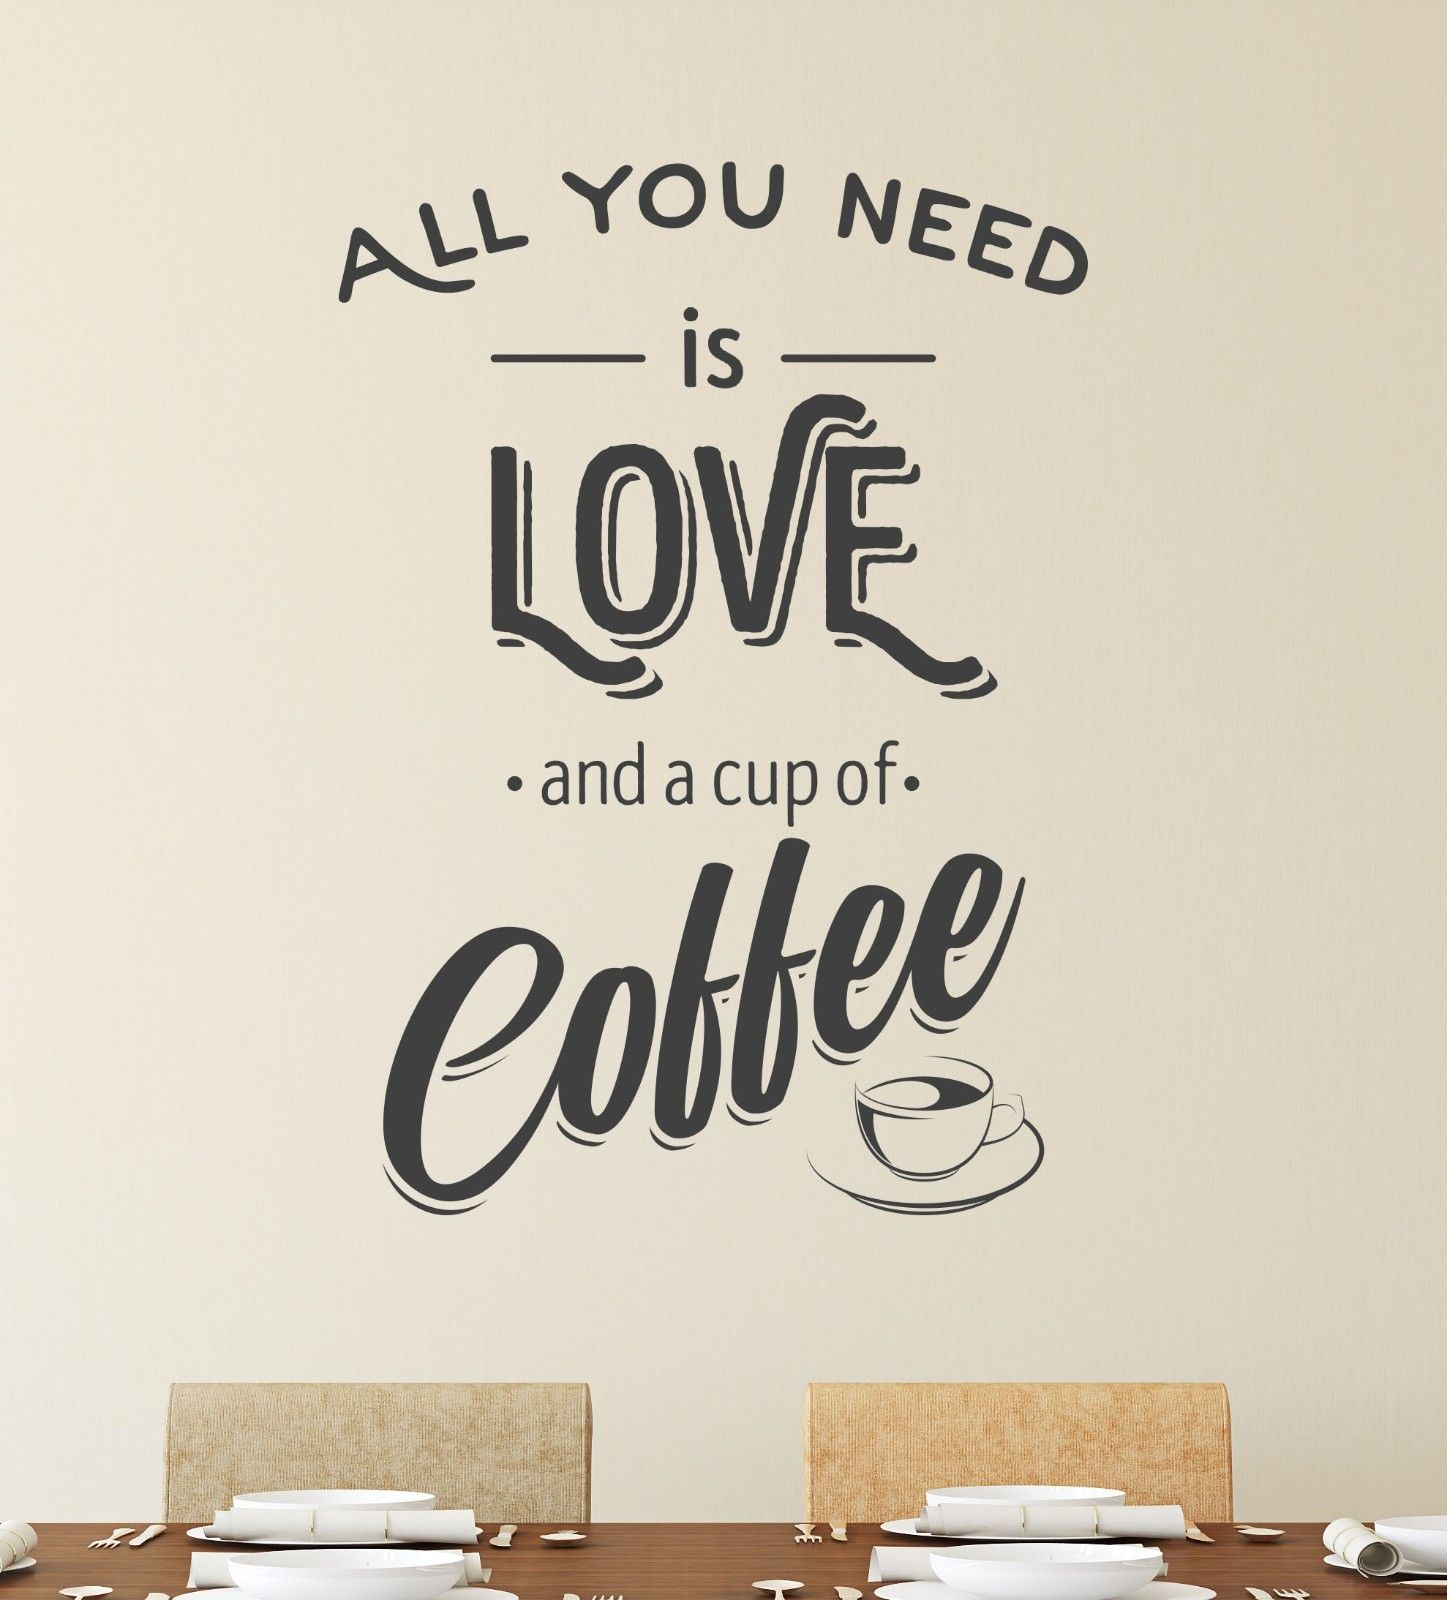 Décoration Murale Vinyle All You Need Is Coffee Wall Sticker Vinyl Decal Art Pub Cafe Decor Mural Graphic